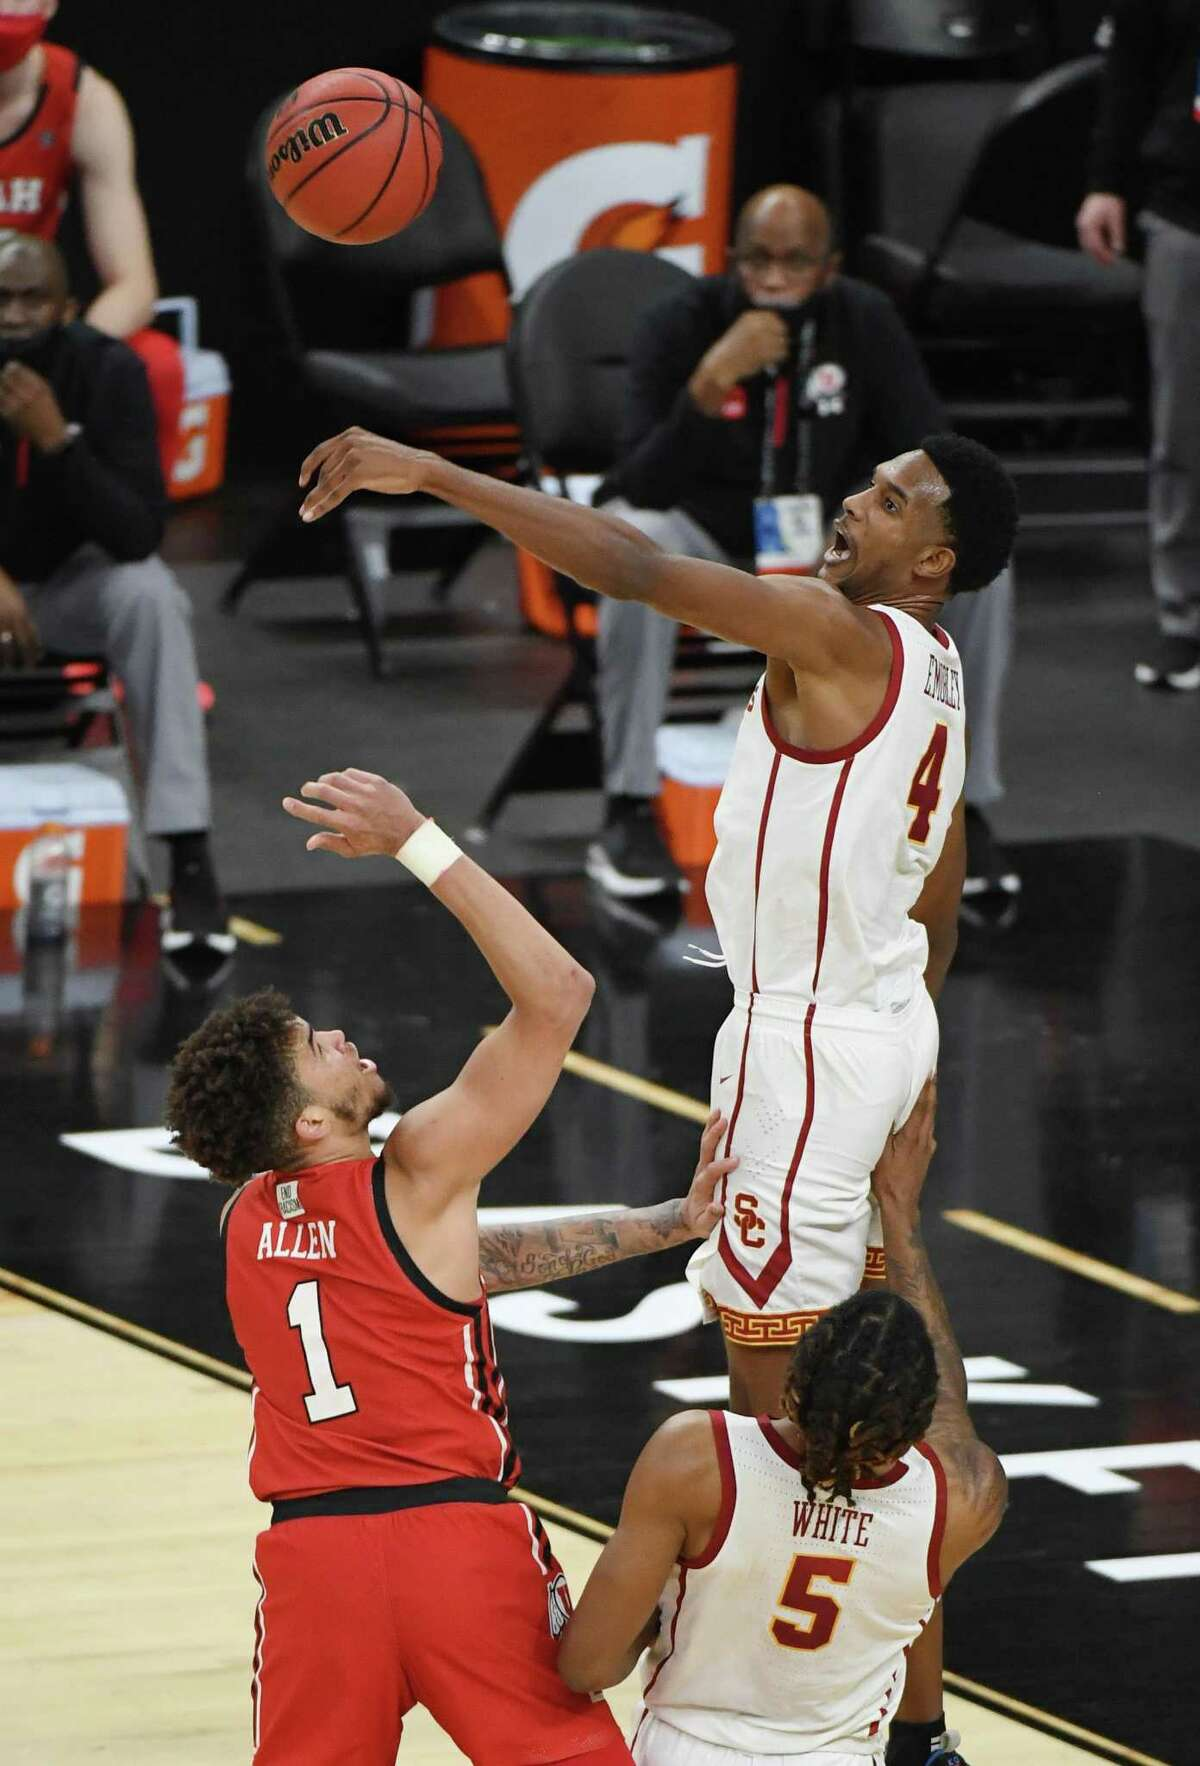 Evan Mobley, blocking a shot in Pac-12 tournament against Utah, has star potential on defense but questions remain on if he would need help in certain matchups.